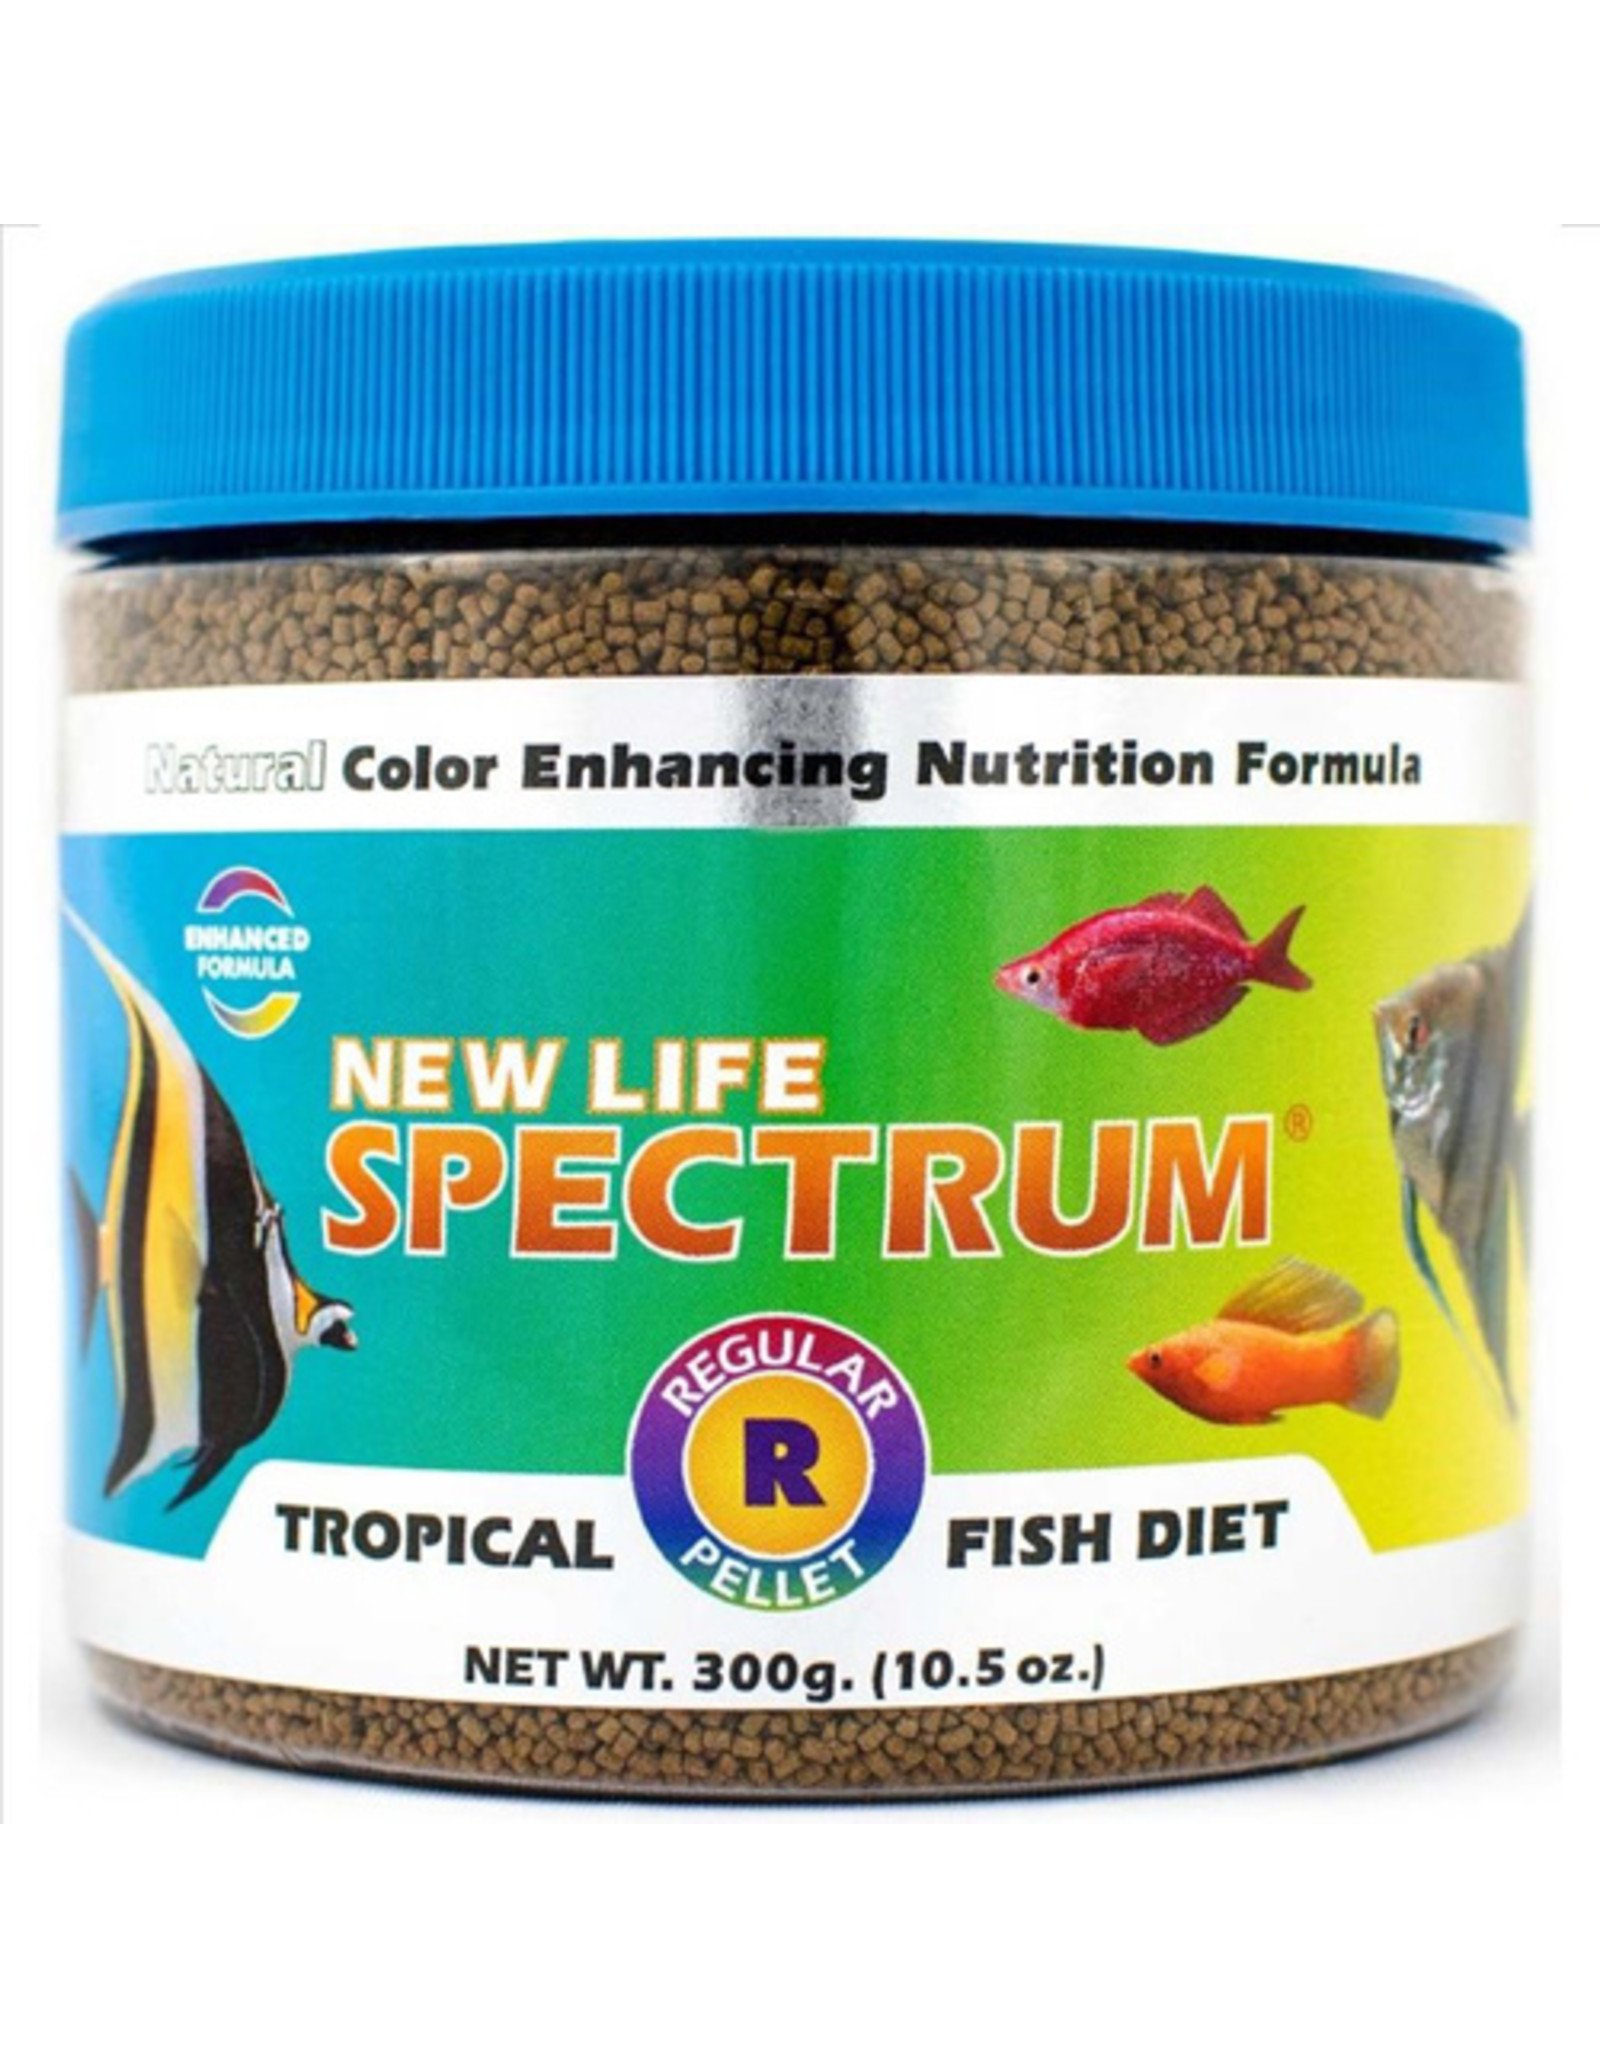 New Life Spectrum NEW LIFE SPECTRUM Tropical Regular 300g